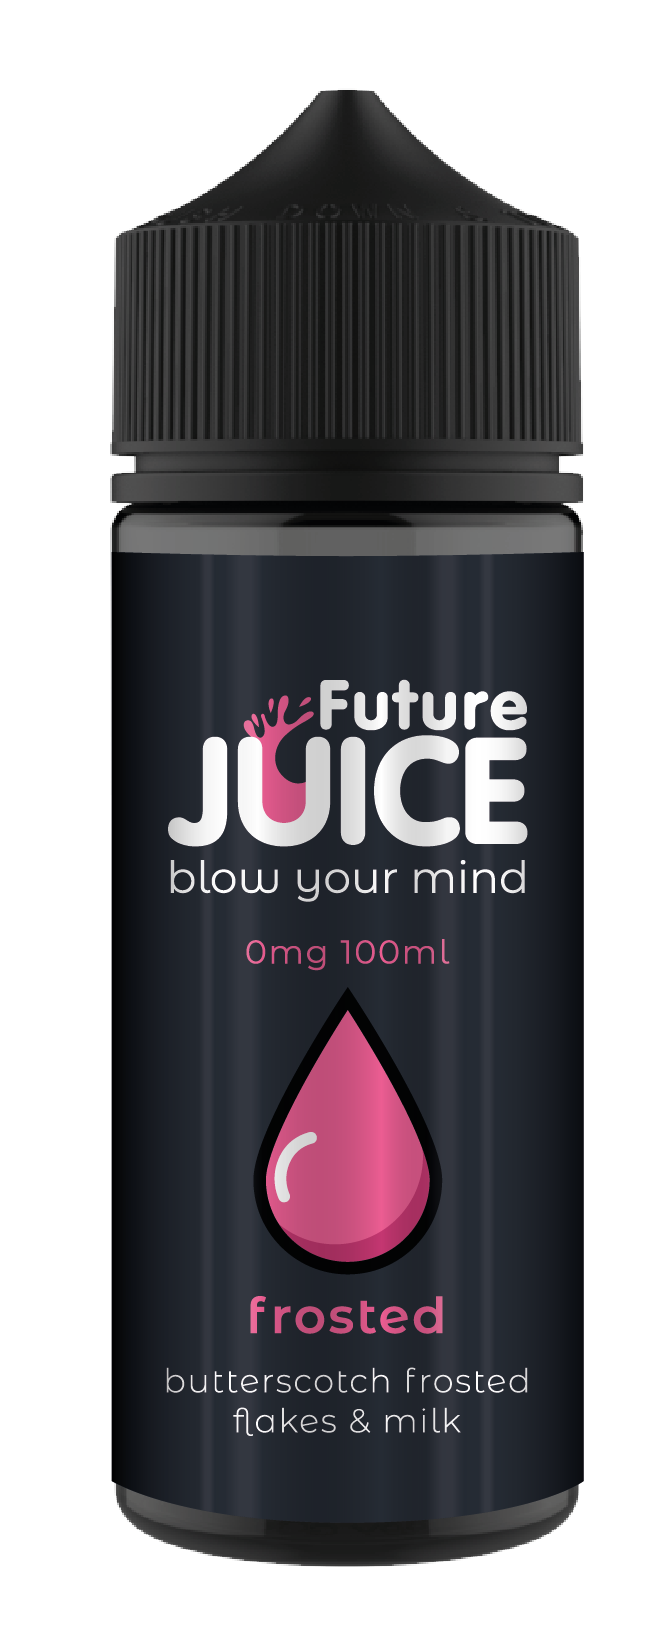 Future Juice - Butterscotch-frosted-flakes-milk